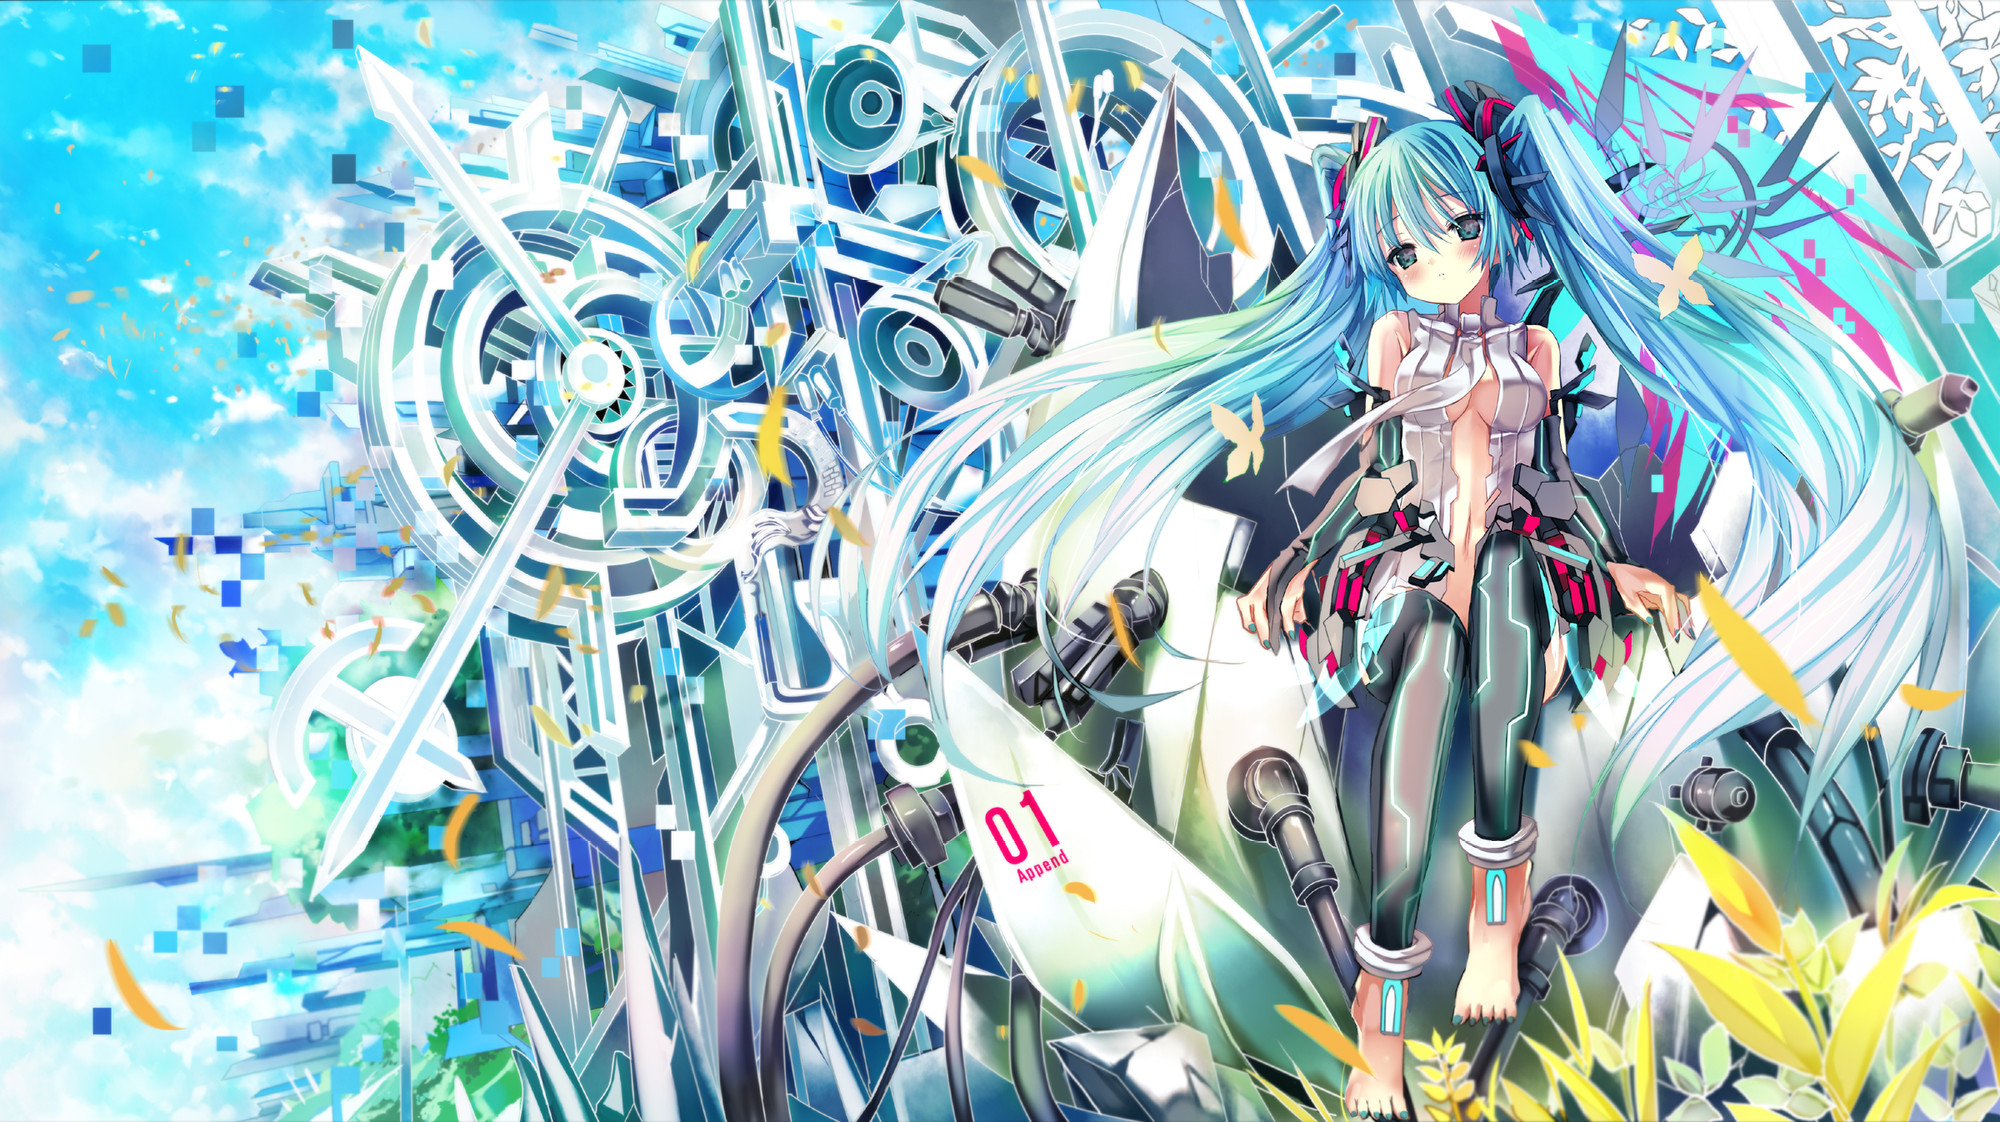 2000x1122 Vocaloid Wallpaper Free HD Wallpapers Backgrounds Download